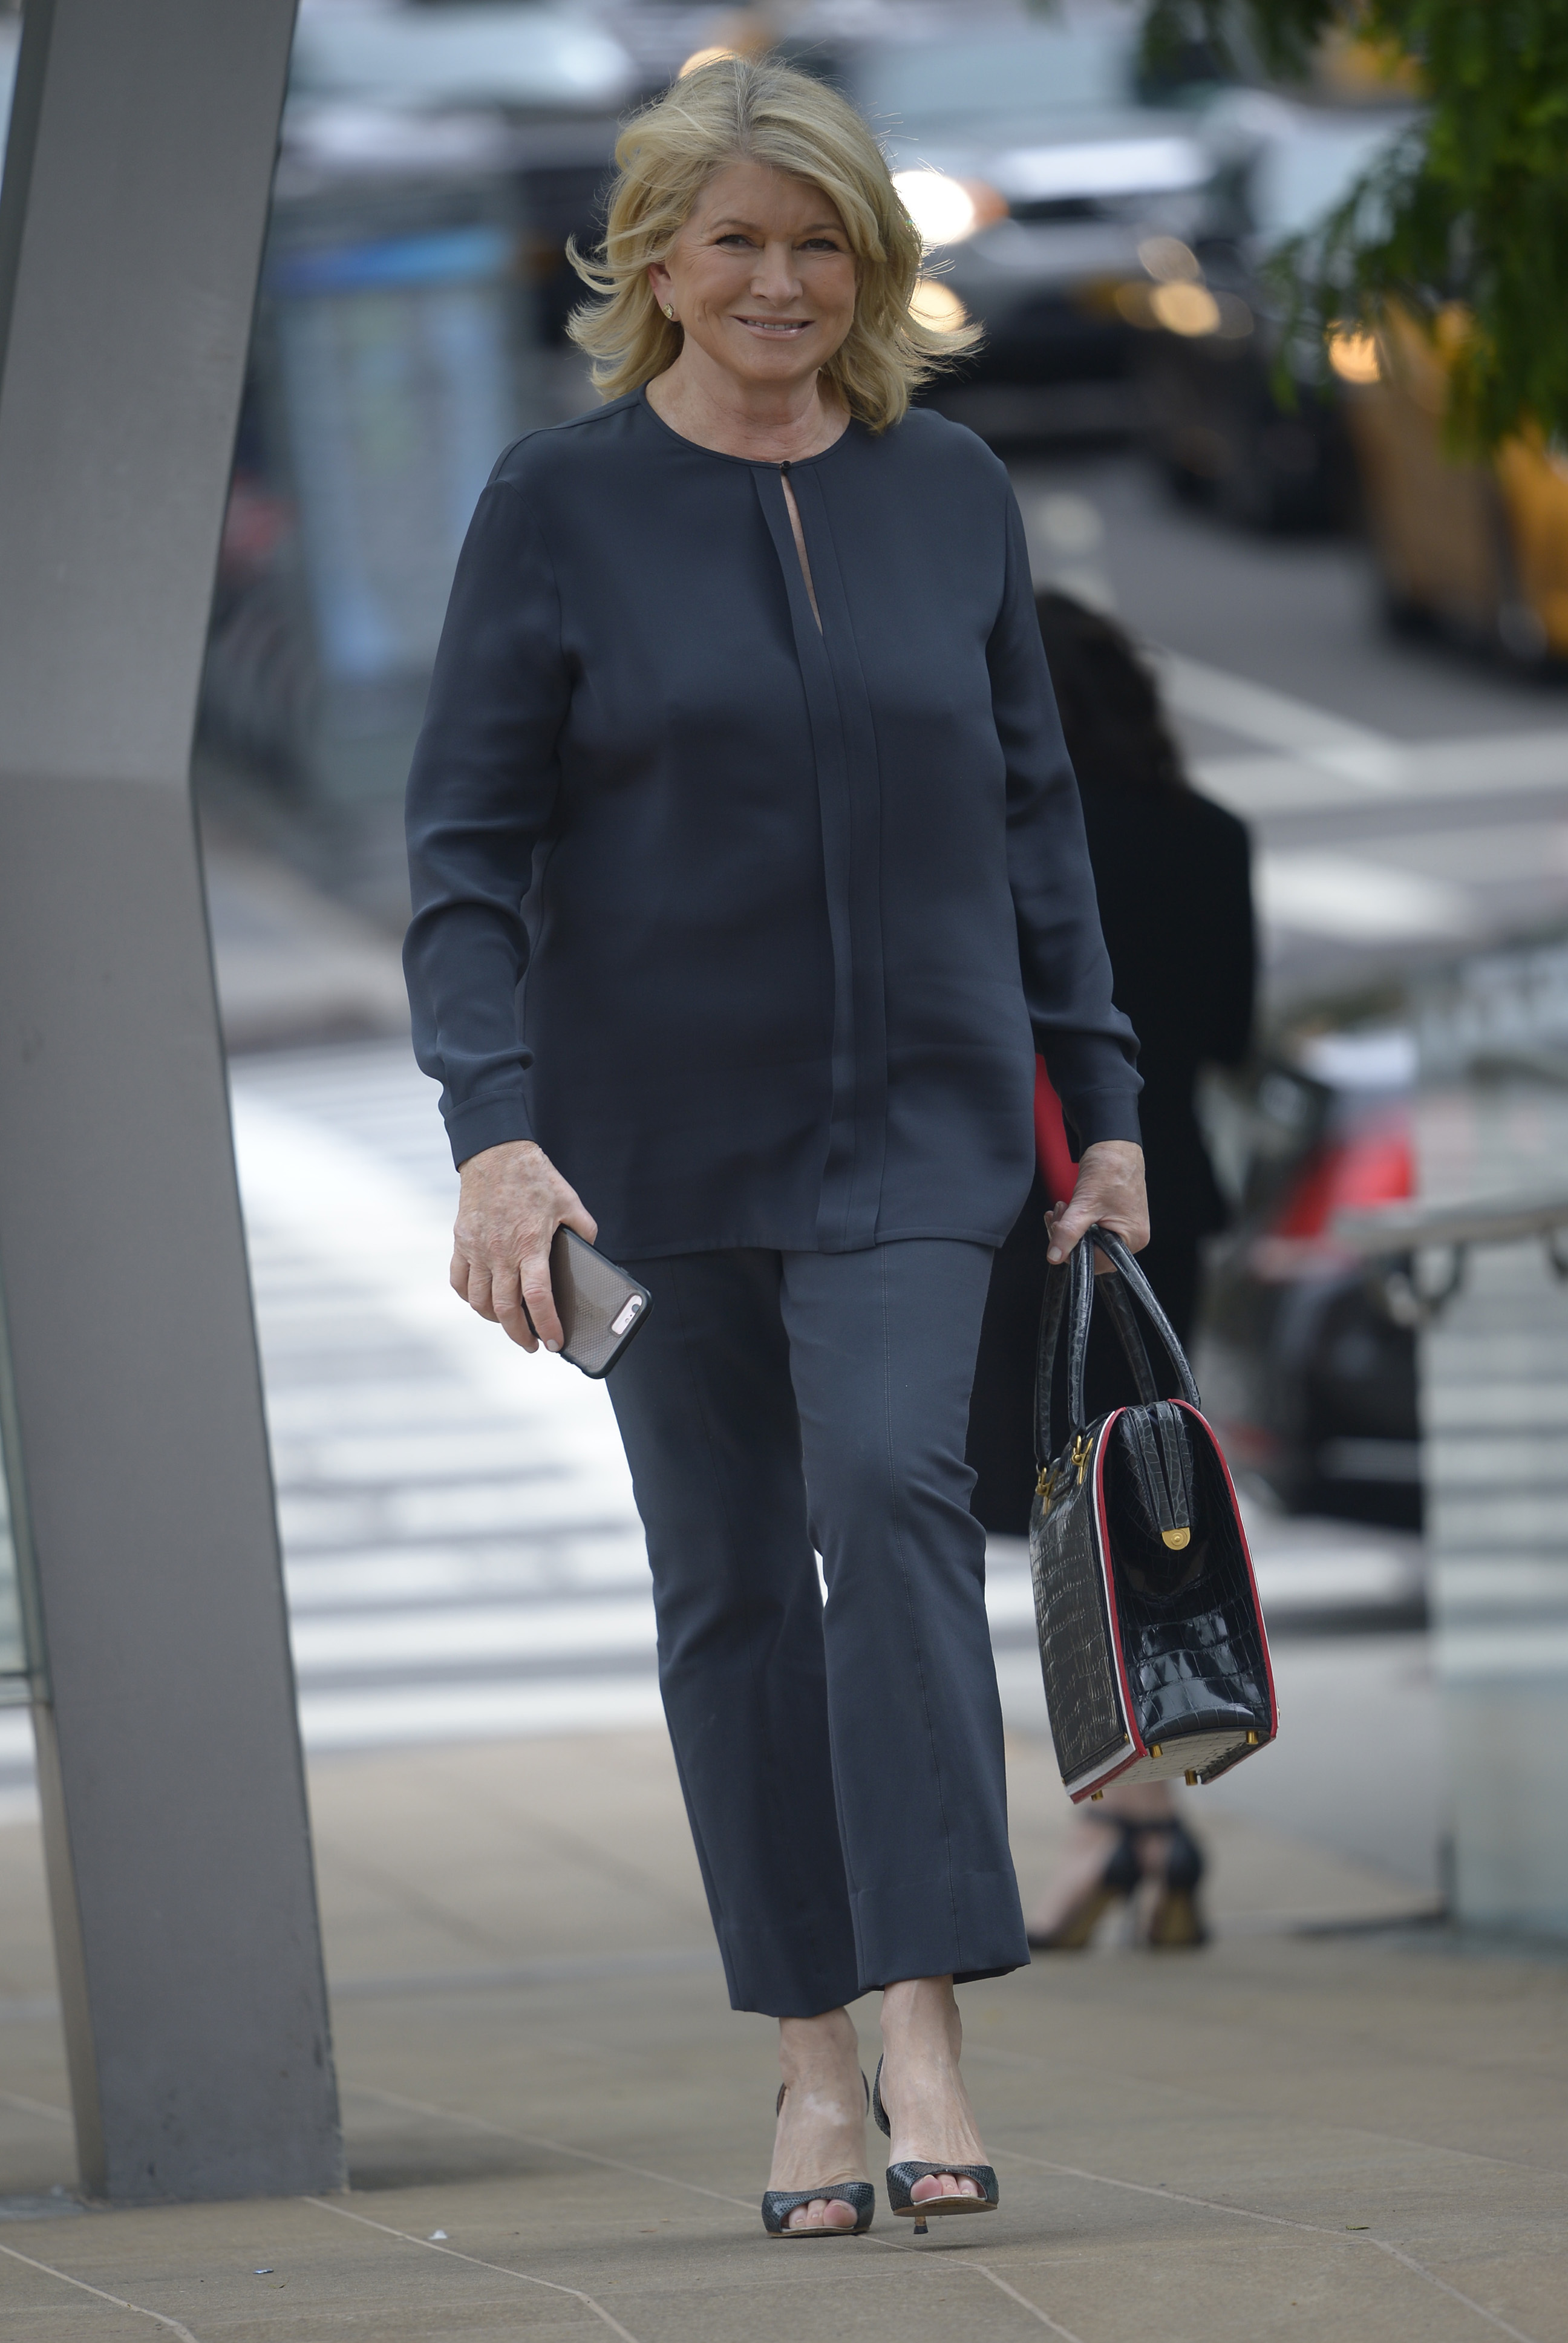 Martha Stewart totes a leather bag as she arrives at a New York Fashion Week event at the David Koch Theater in New York City on Sept. 8, 2017.